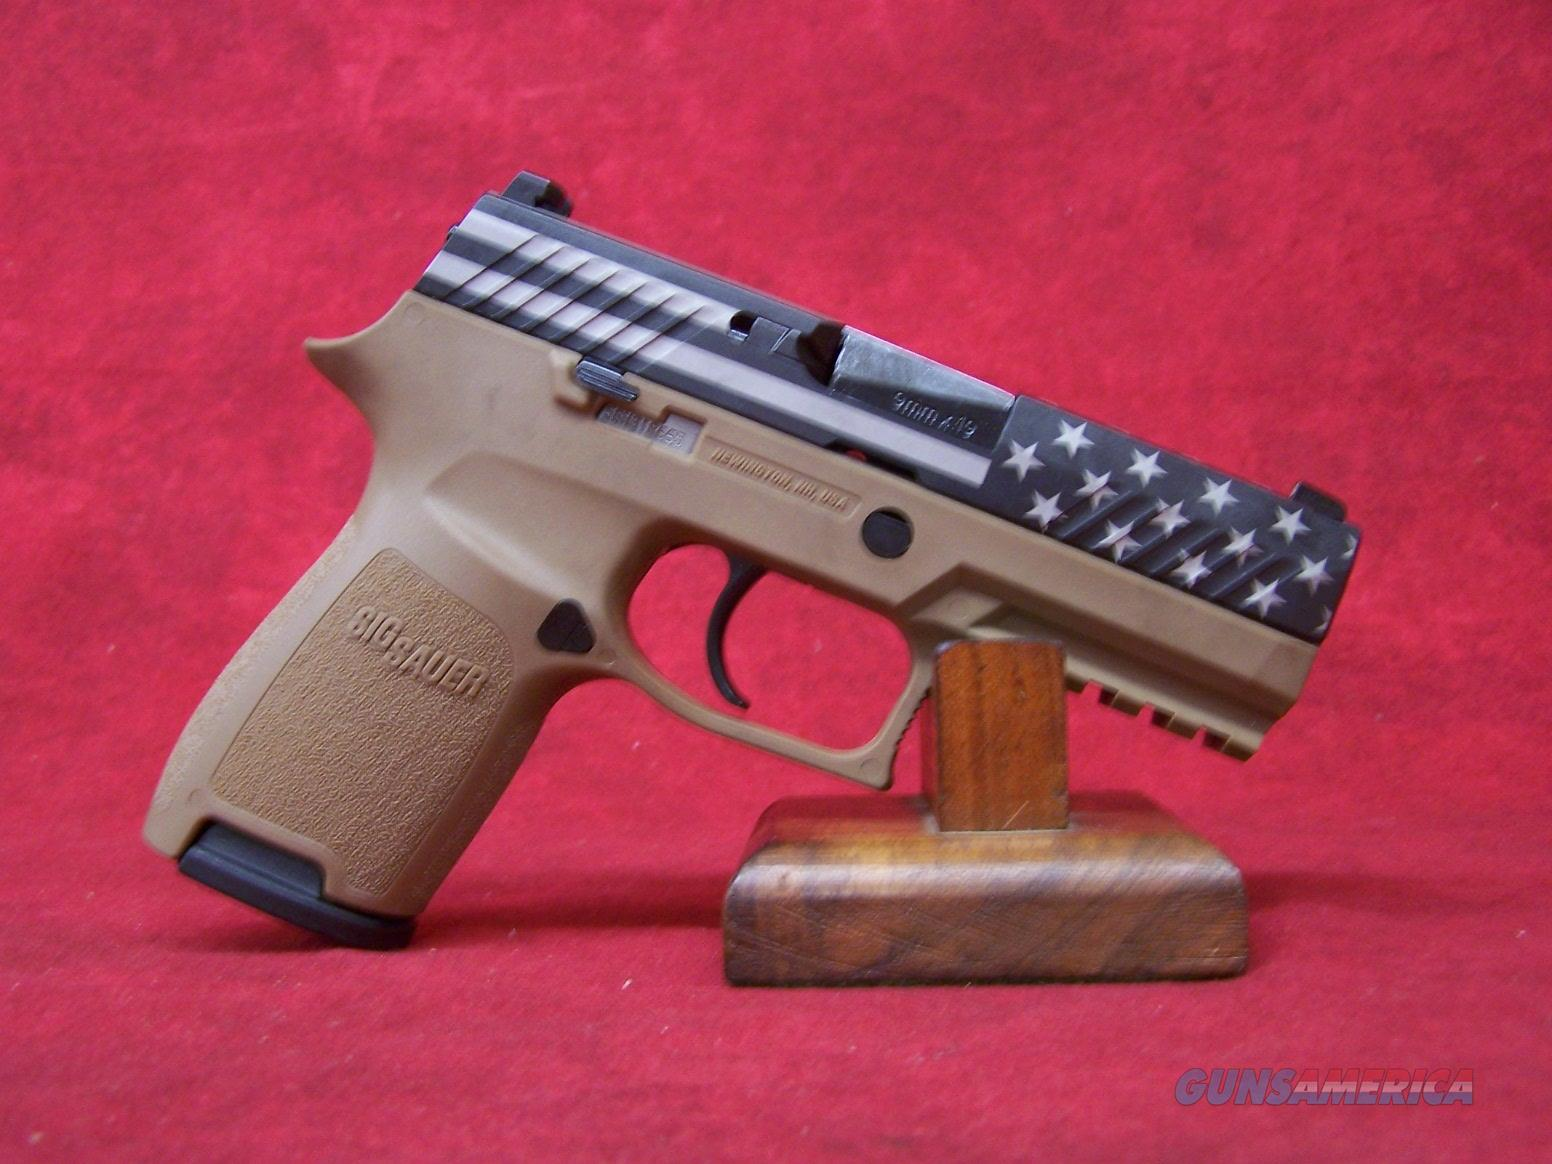 "Sig Sauer P320 FLAG 9MM 15RD Coyote Flag With Stars Slide 3.9"" Barrel (320C-9-DVS18)798681605255  Guns > Pistols > Sig - Sauer/Sigarms Pistols > P320"